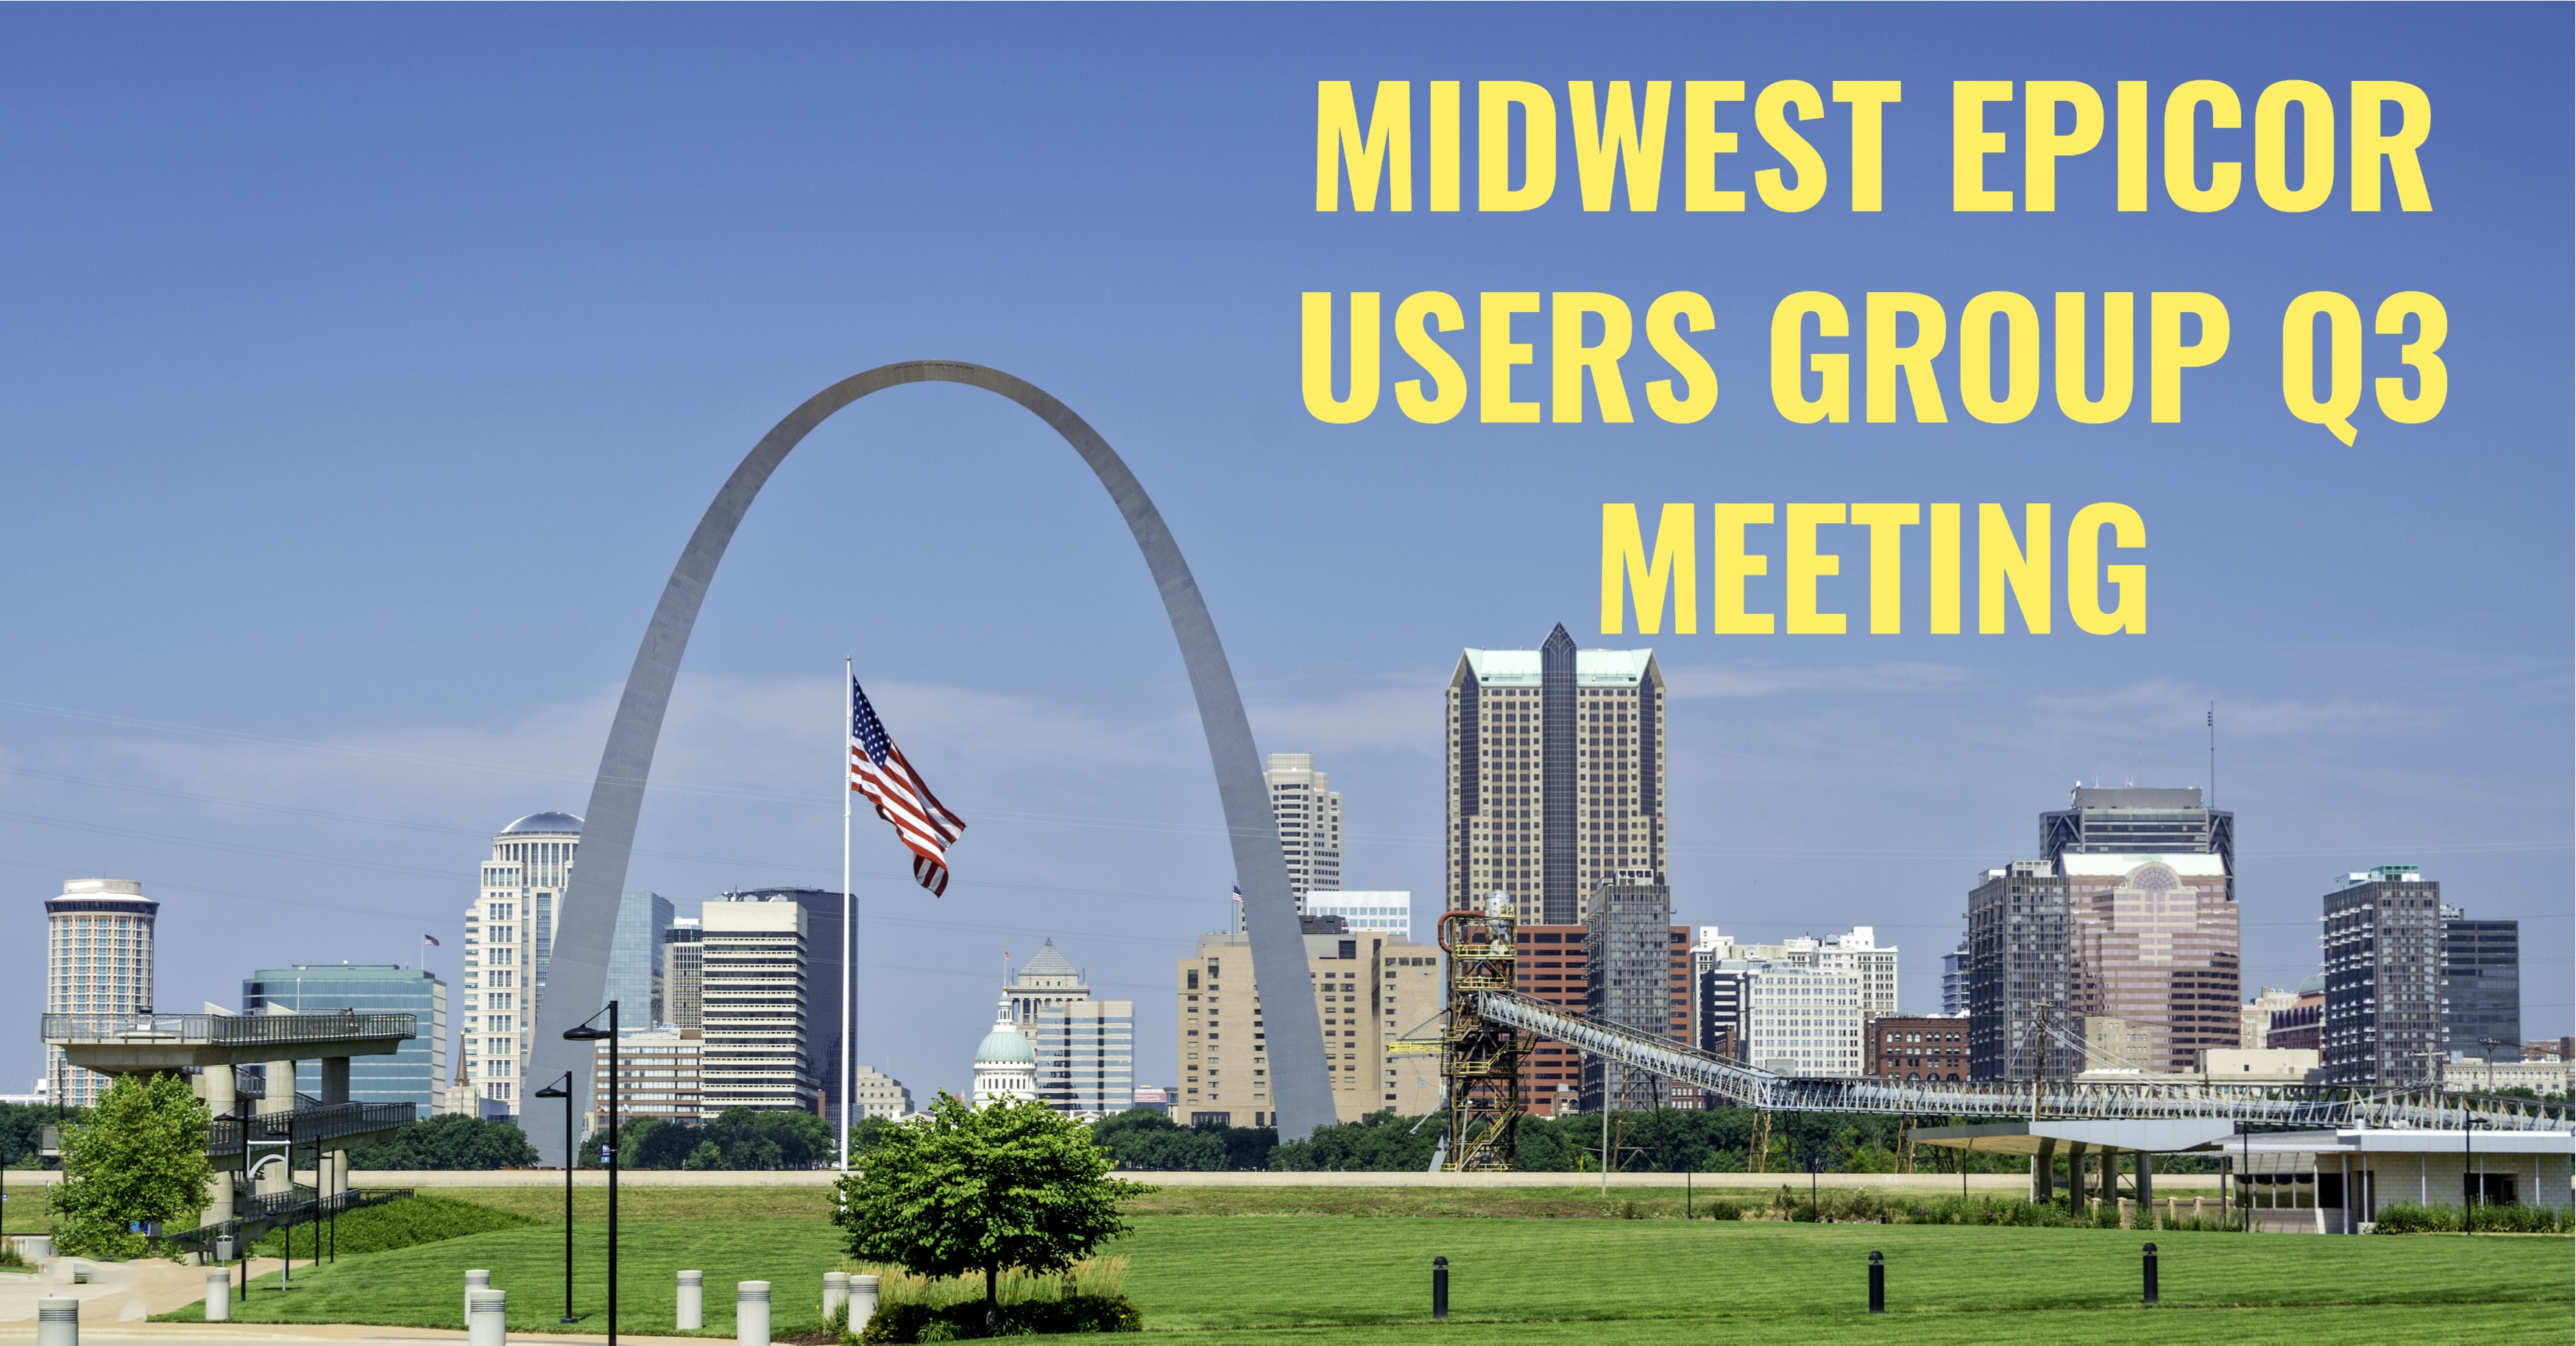 Get Ready for the Next Midwest Epicor Users Group Meeting